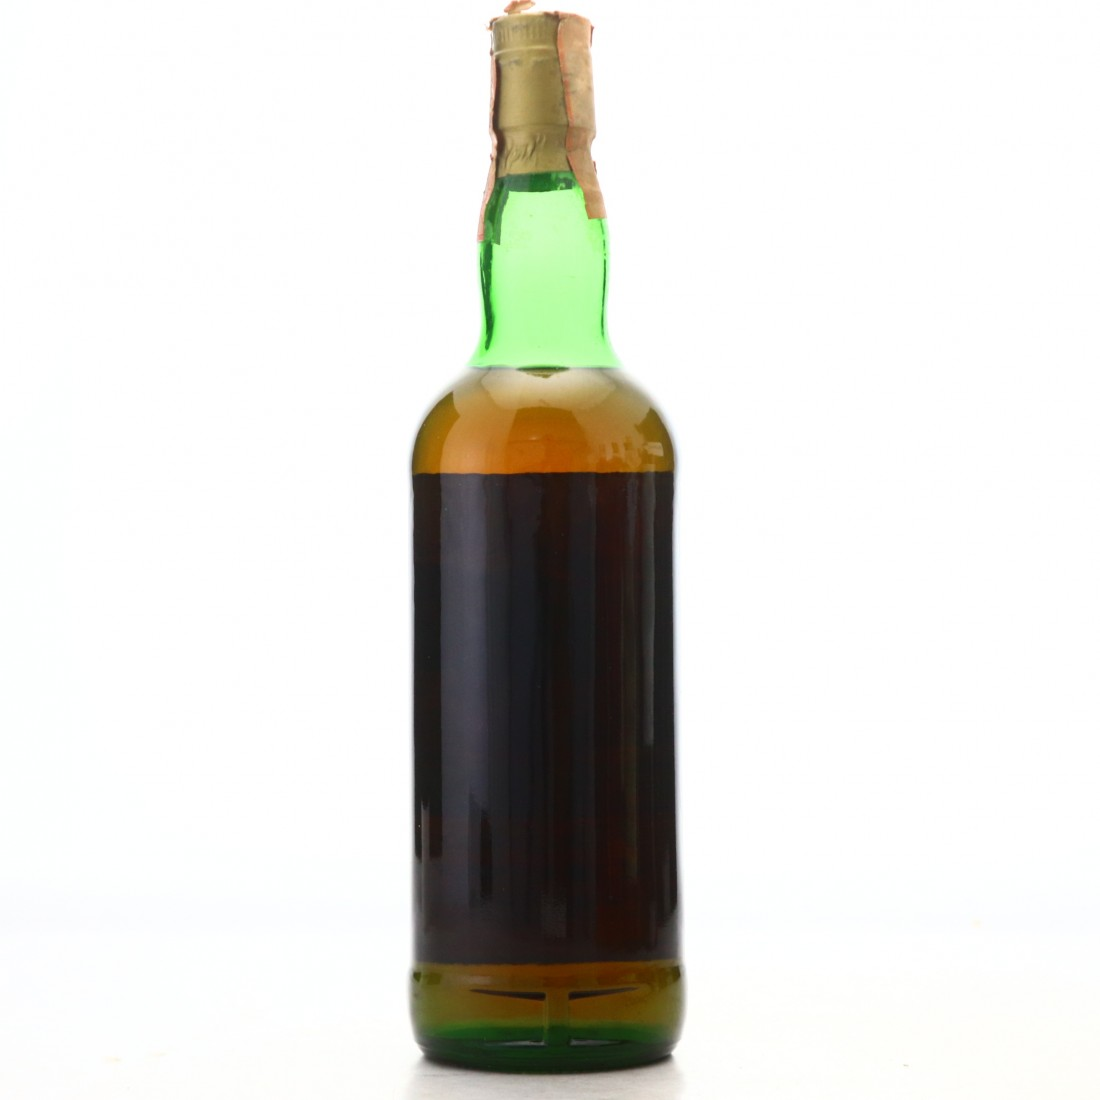 Glenugie 1967 Sestante Cask Strength Sherry Wood